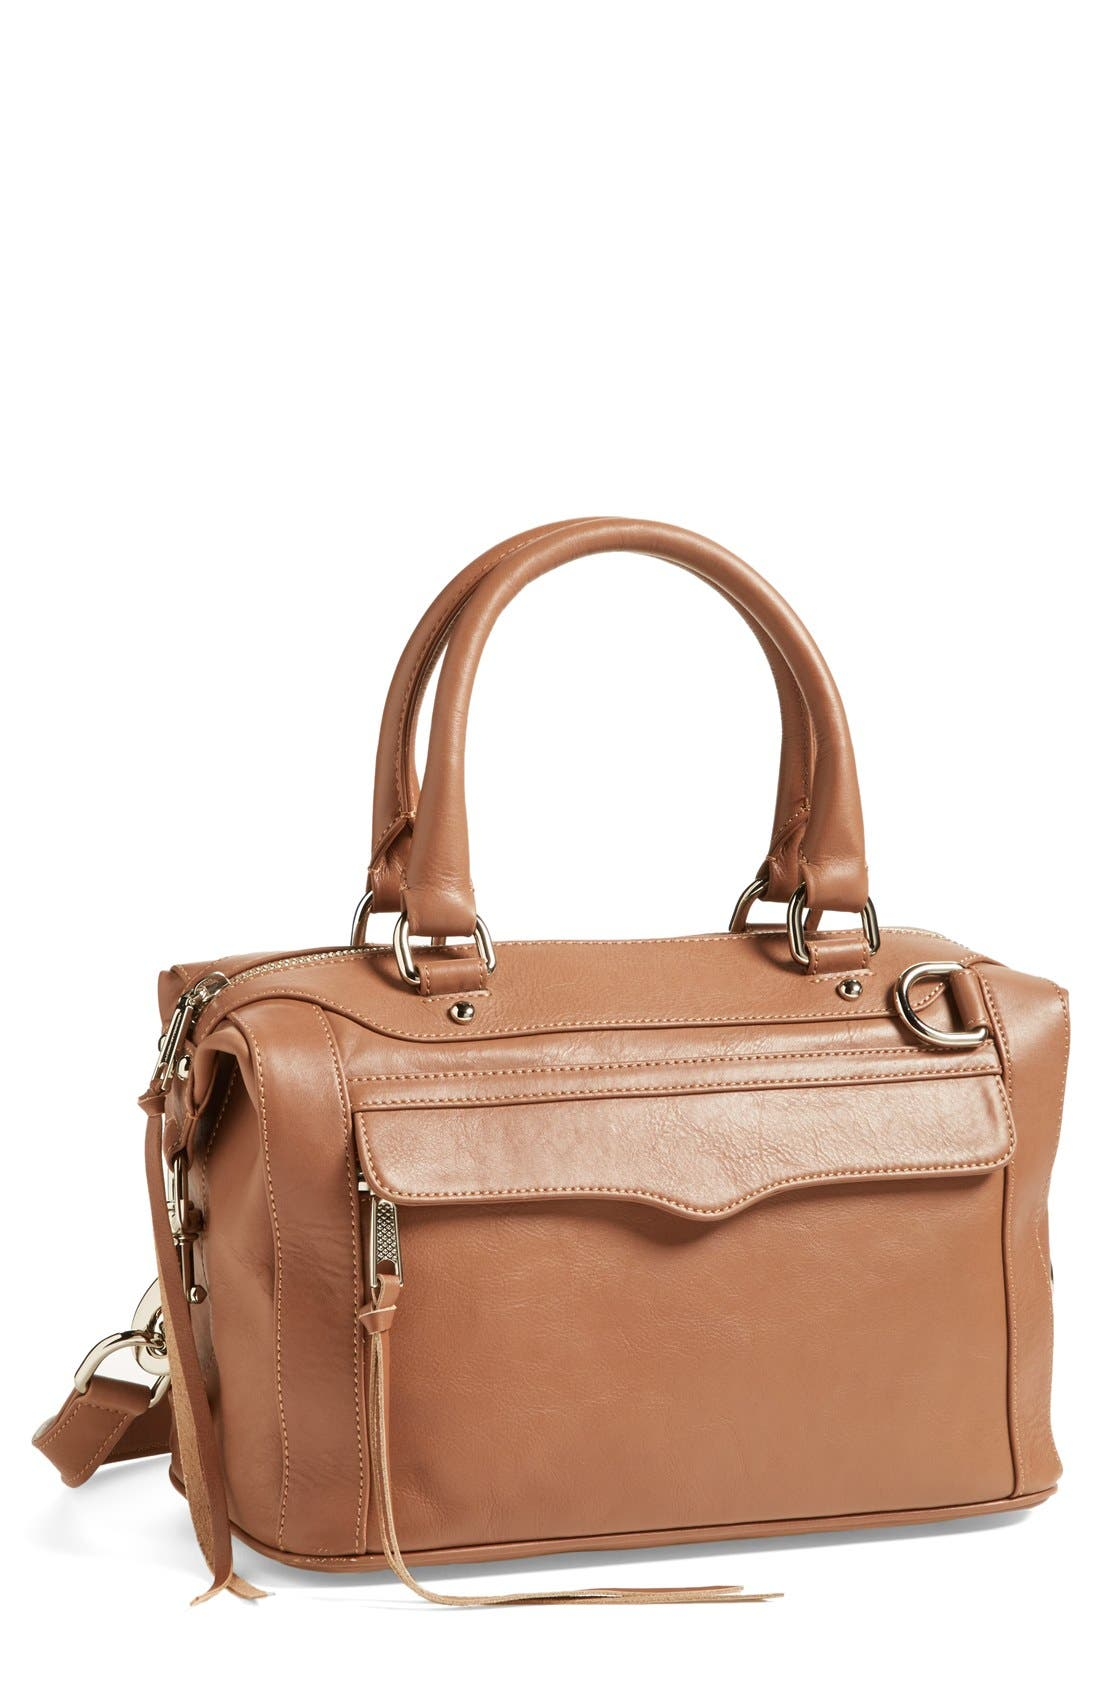 Alternate Image 1 Selected - Rebecca Minkoff 'MAB - Mini' Leather Satchel